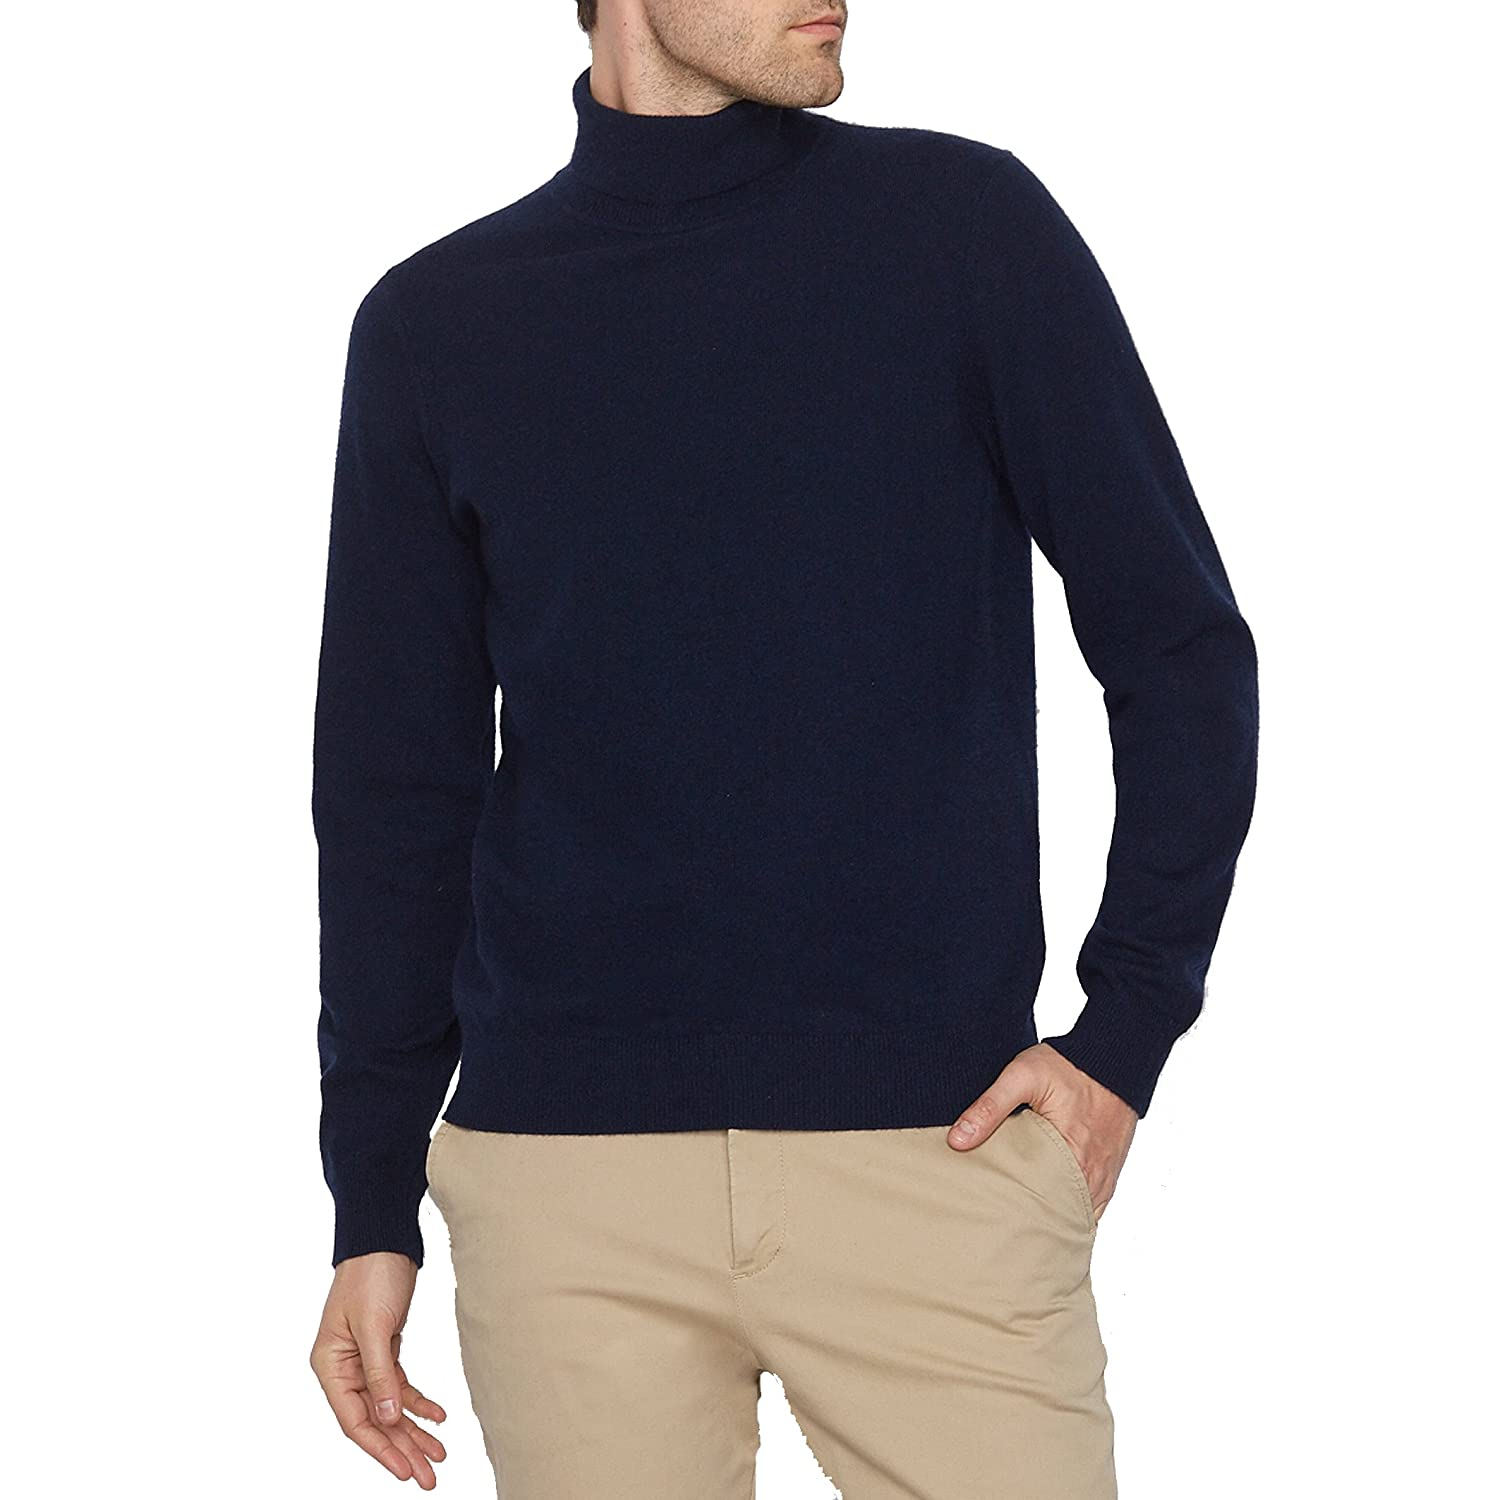 c6dc5541adf La Redoute Collections Mens Cashmere Roll Neck Jumper/Sweater Blue ...